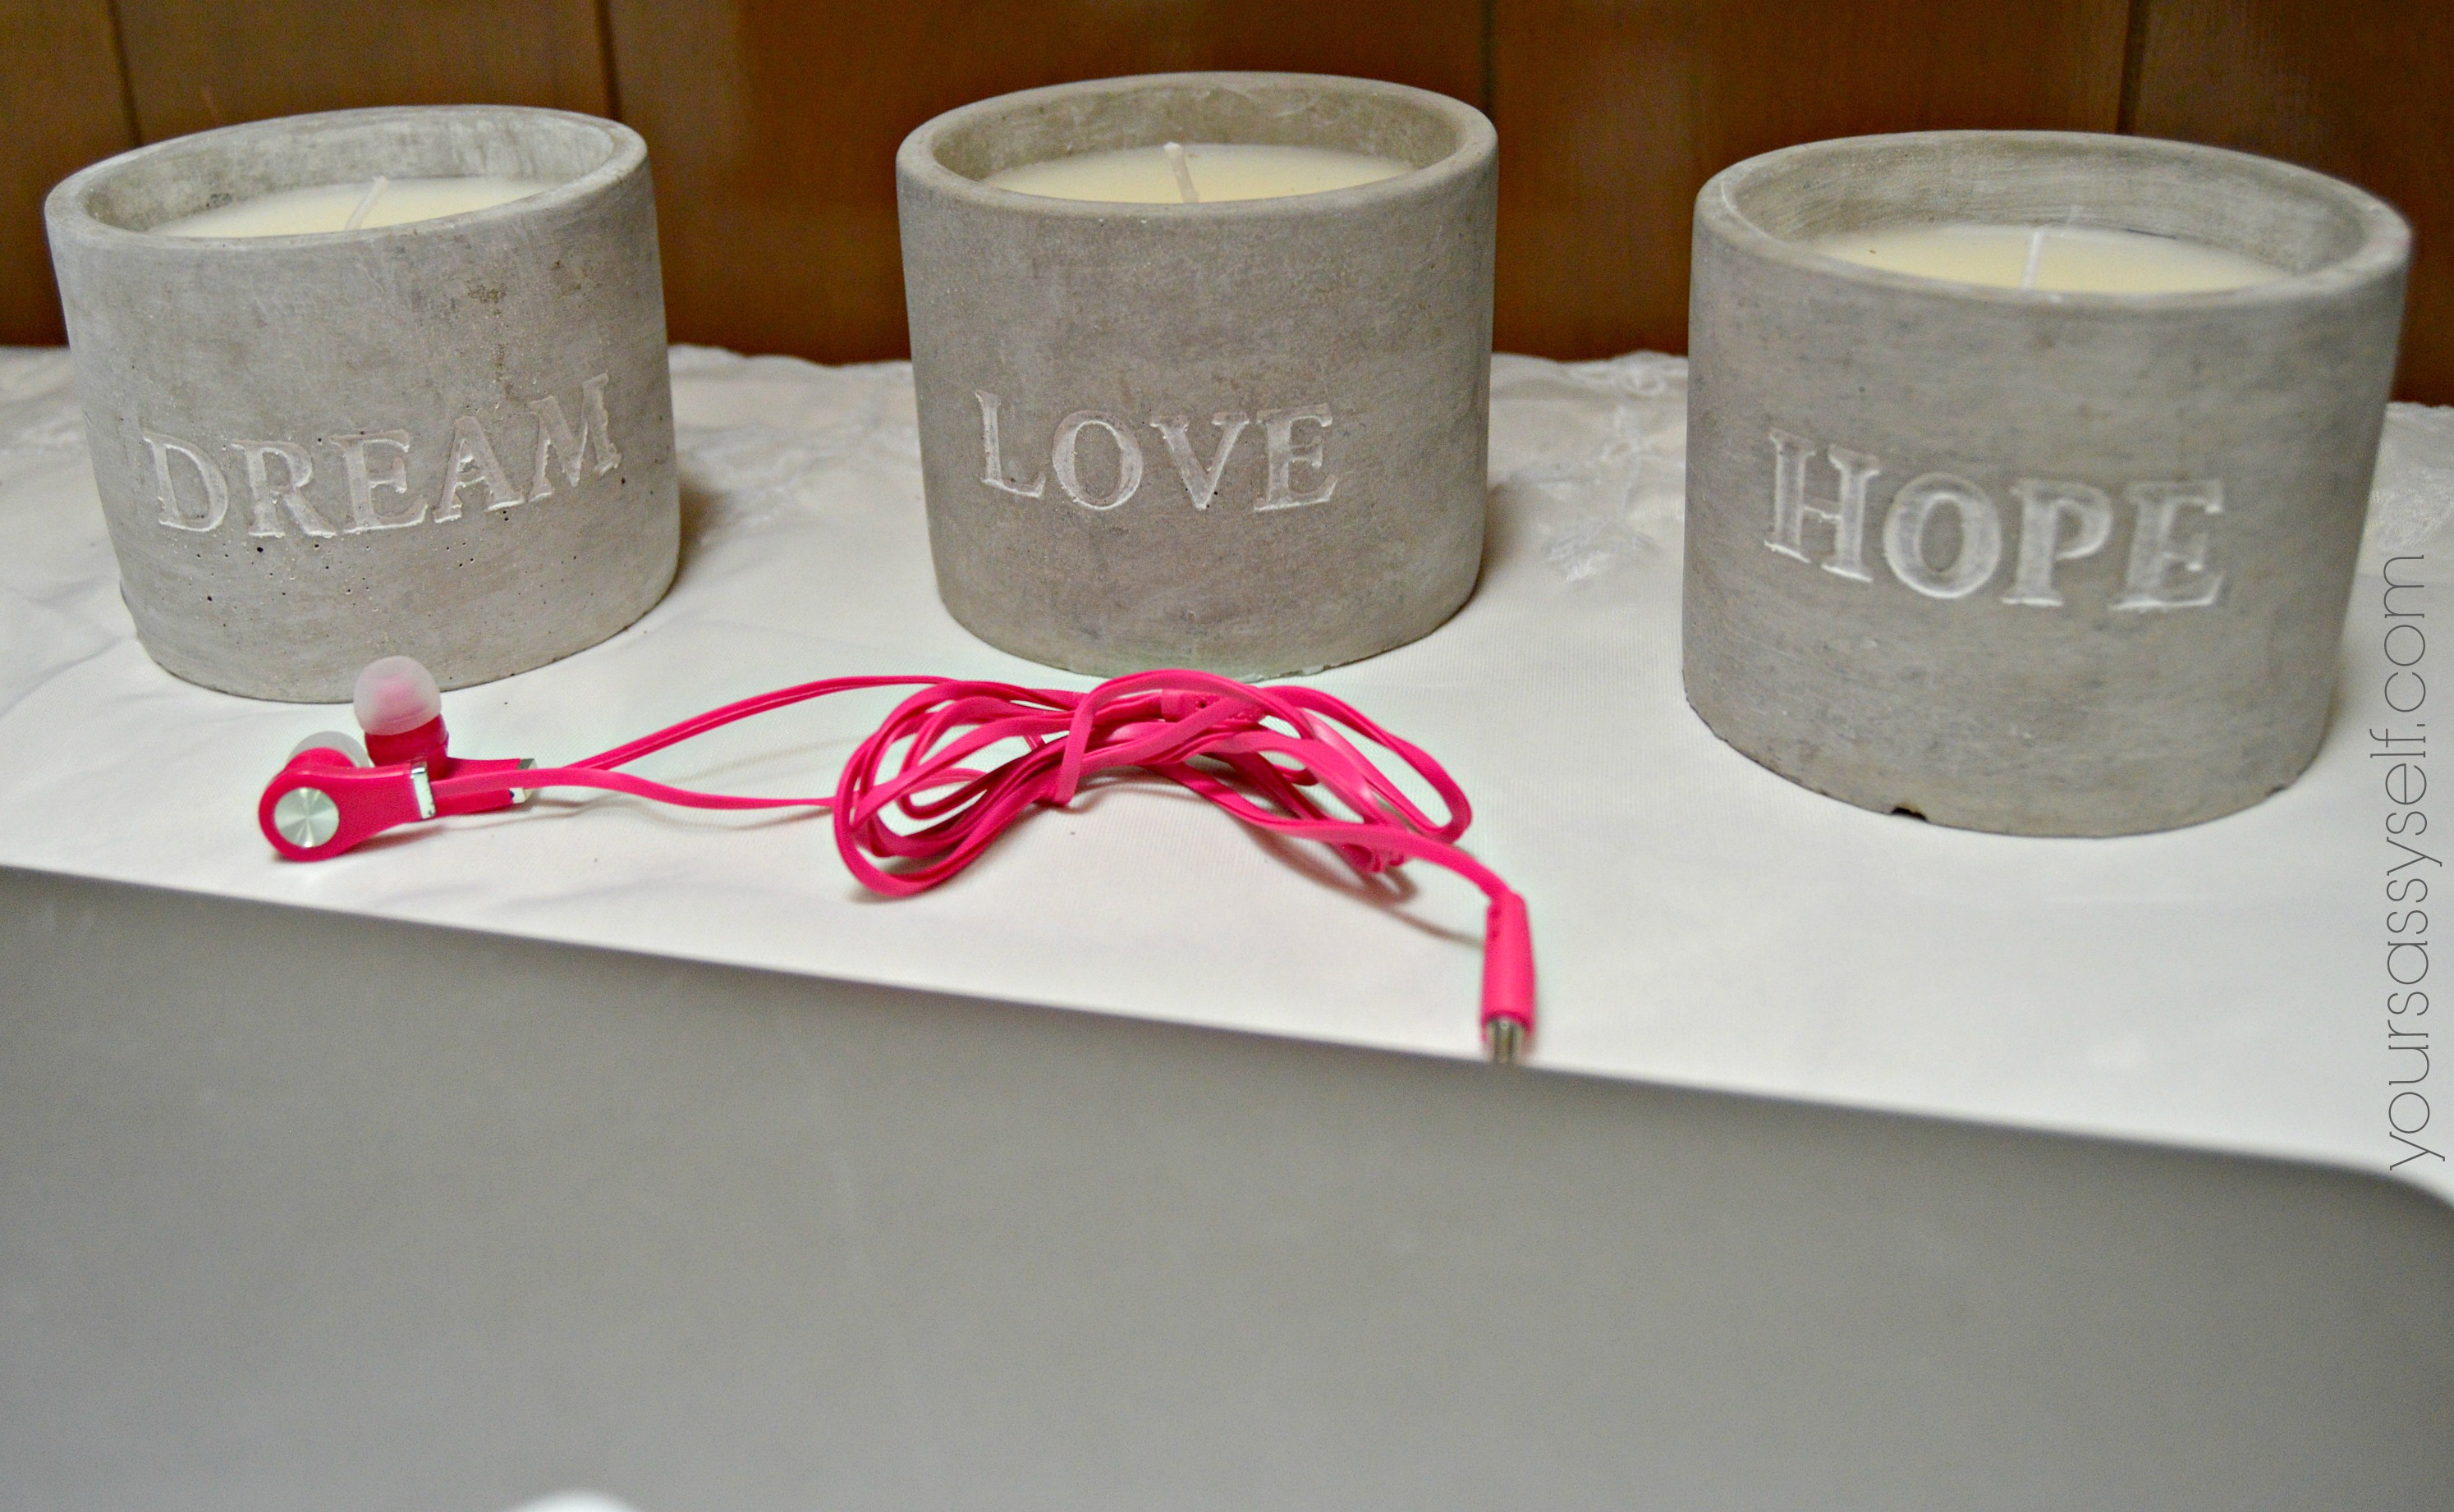 Hot Pink Earbuds in front of Dream, Love, Hope Candles - yoursassyself.com